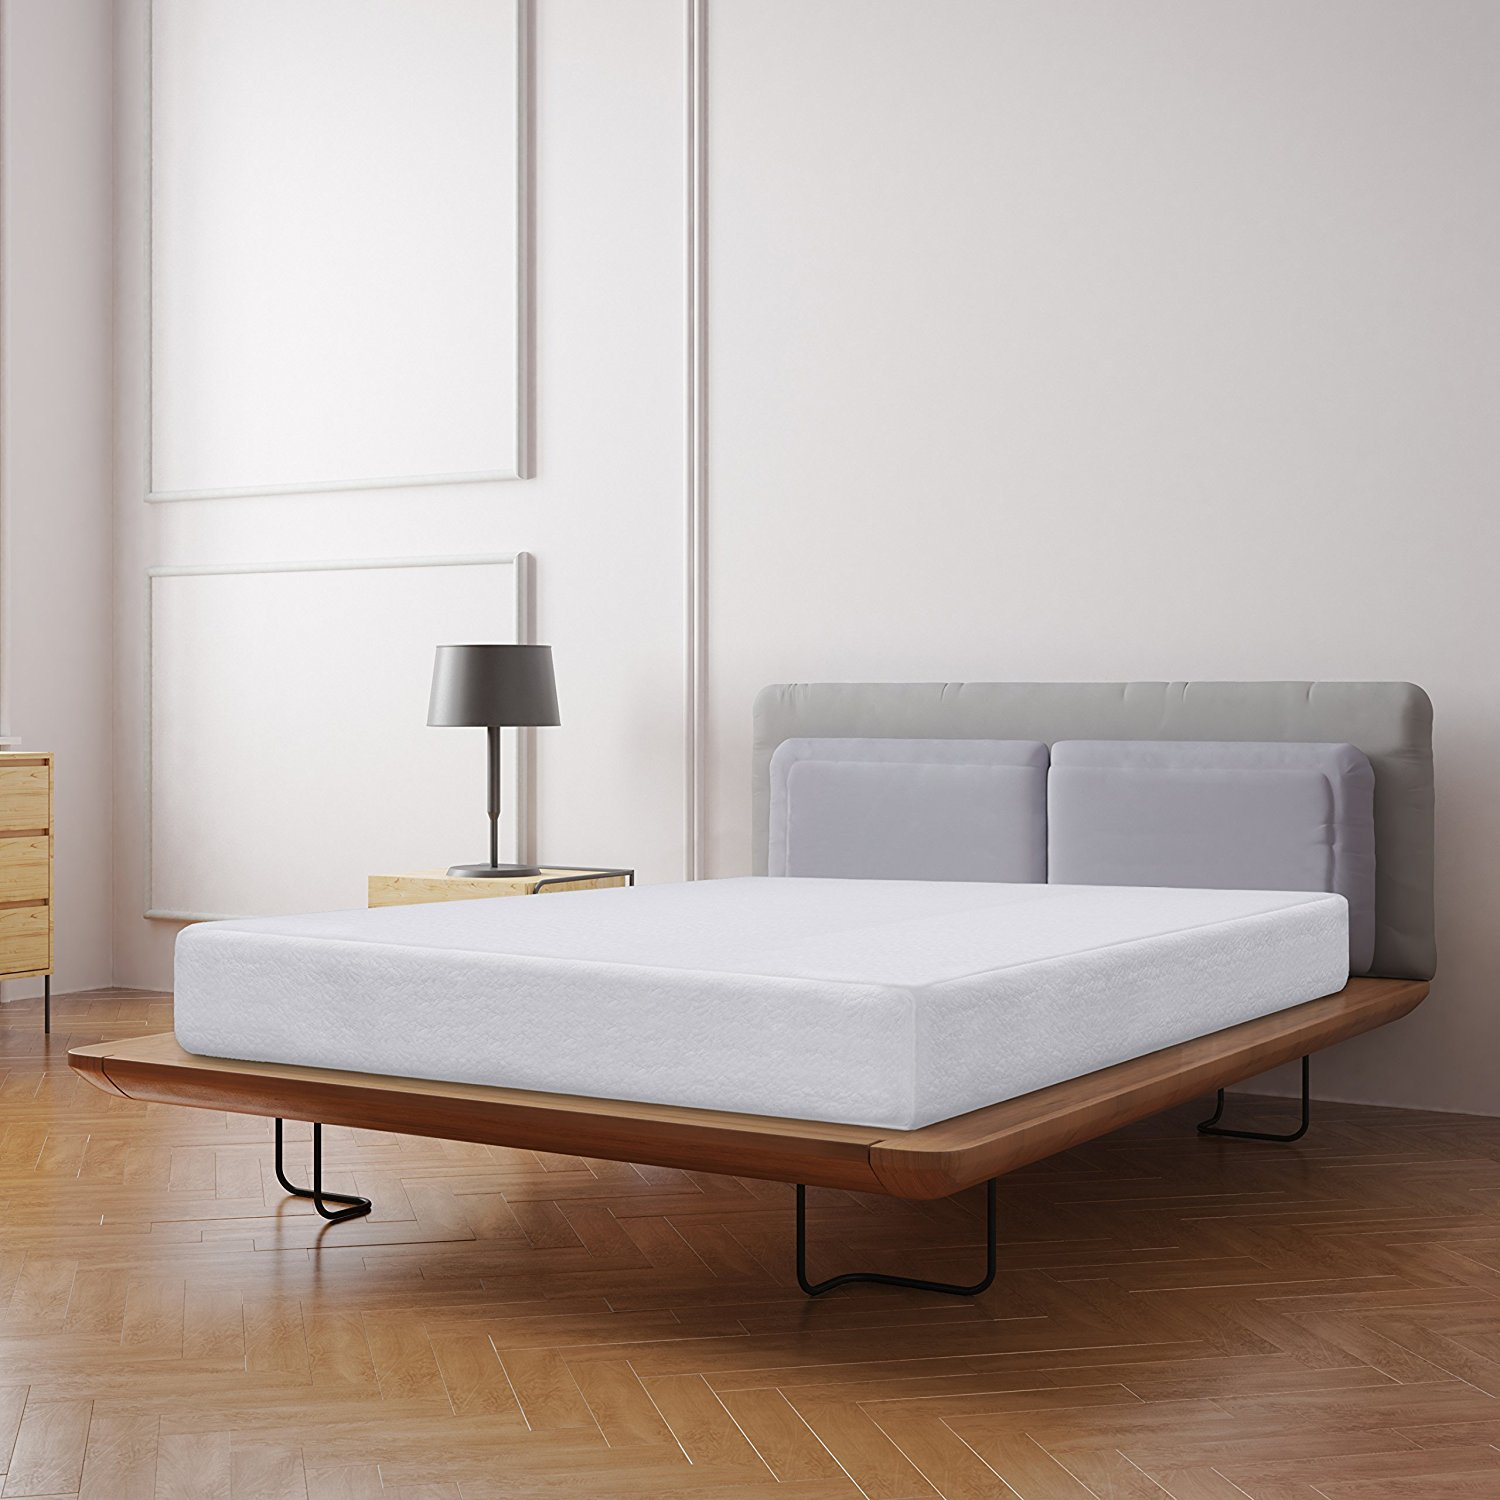 Best Price Mattress 10 Inch Memory Foam Mattress in a Box Multiple Sizes by Best Price Mattress